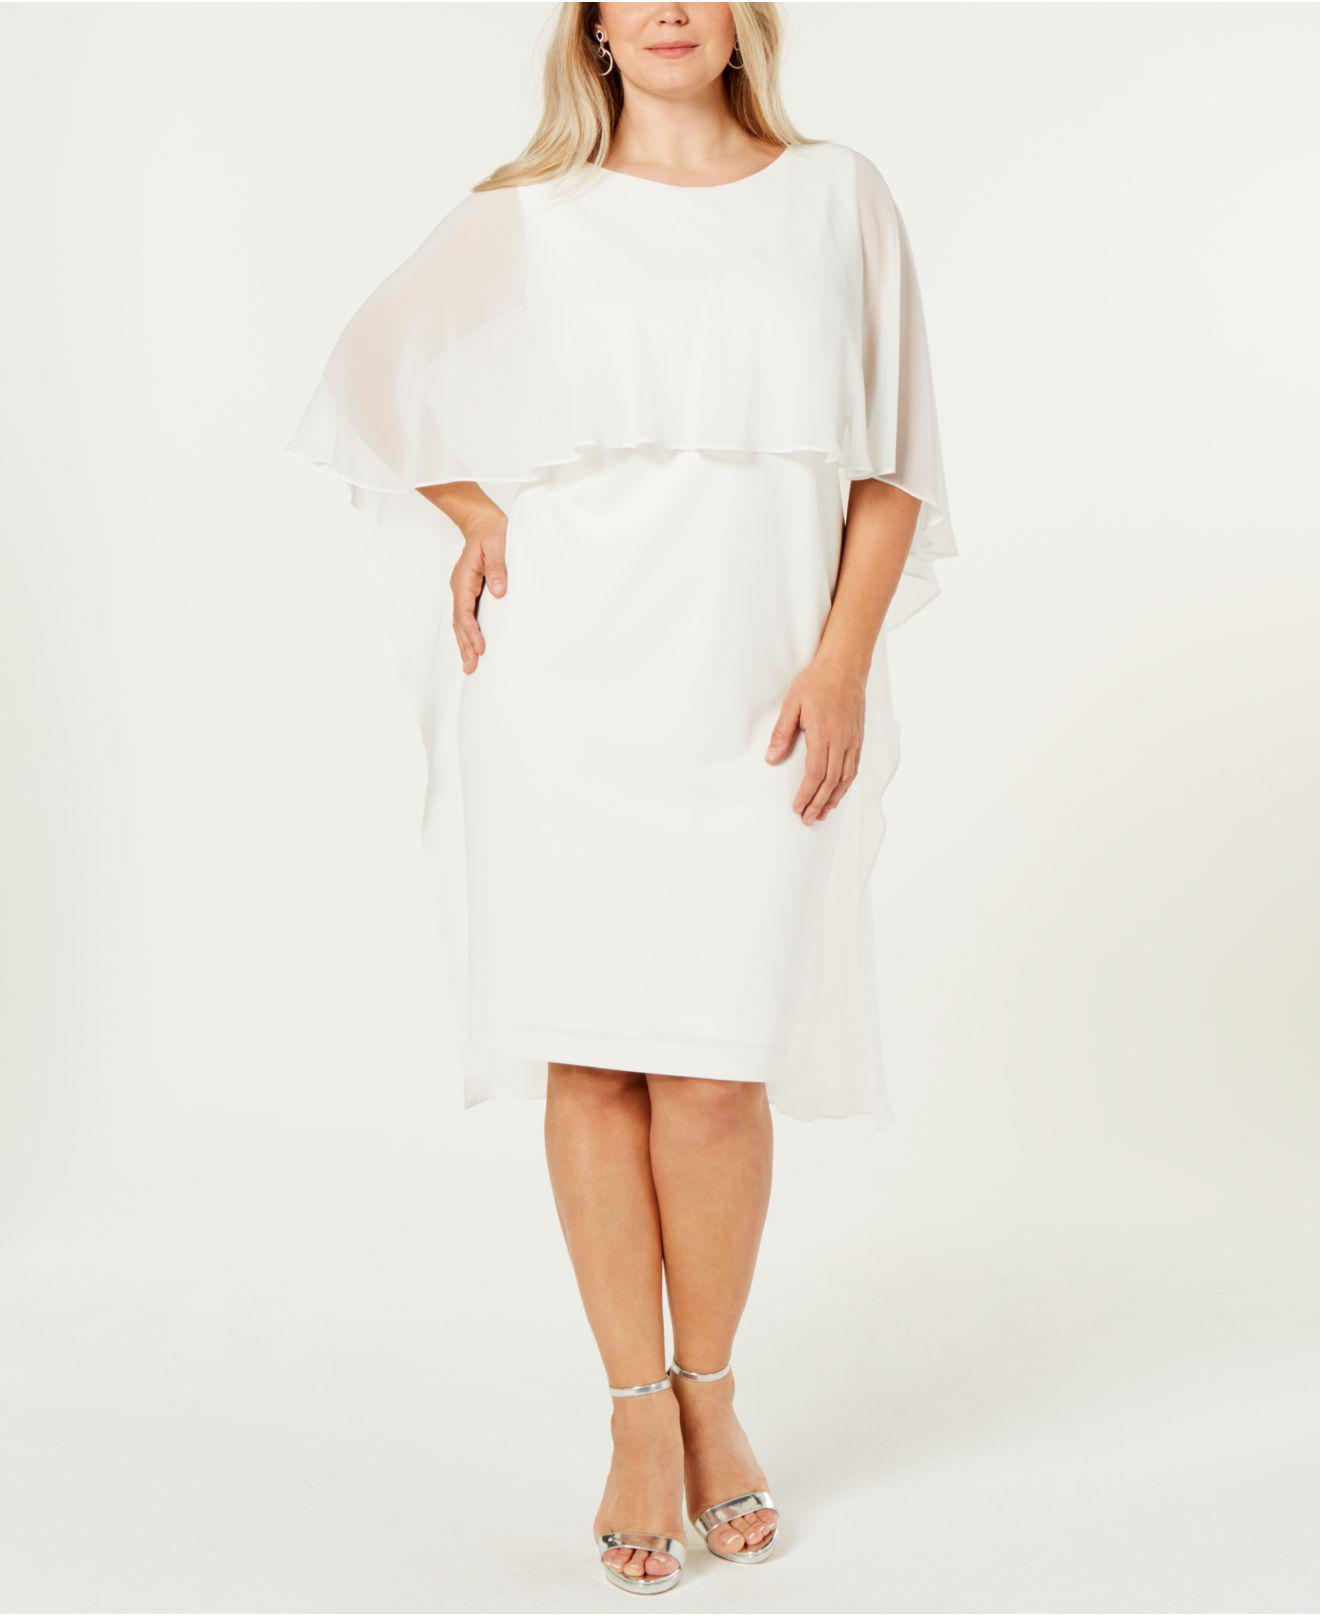 e8d0e1abfeff2 Lyst - Calvin Klein Plus Size Chiffon-cape Dress in White